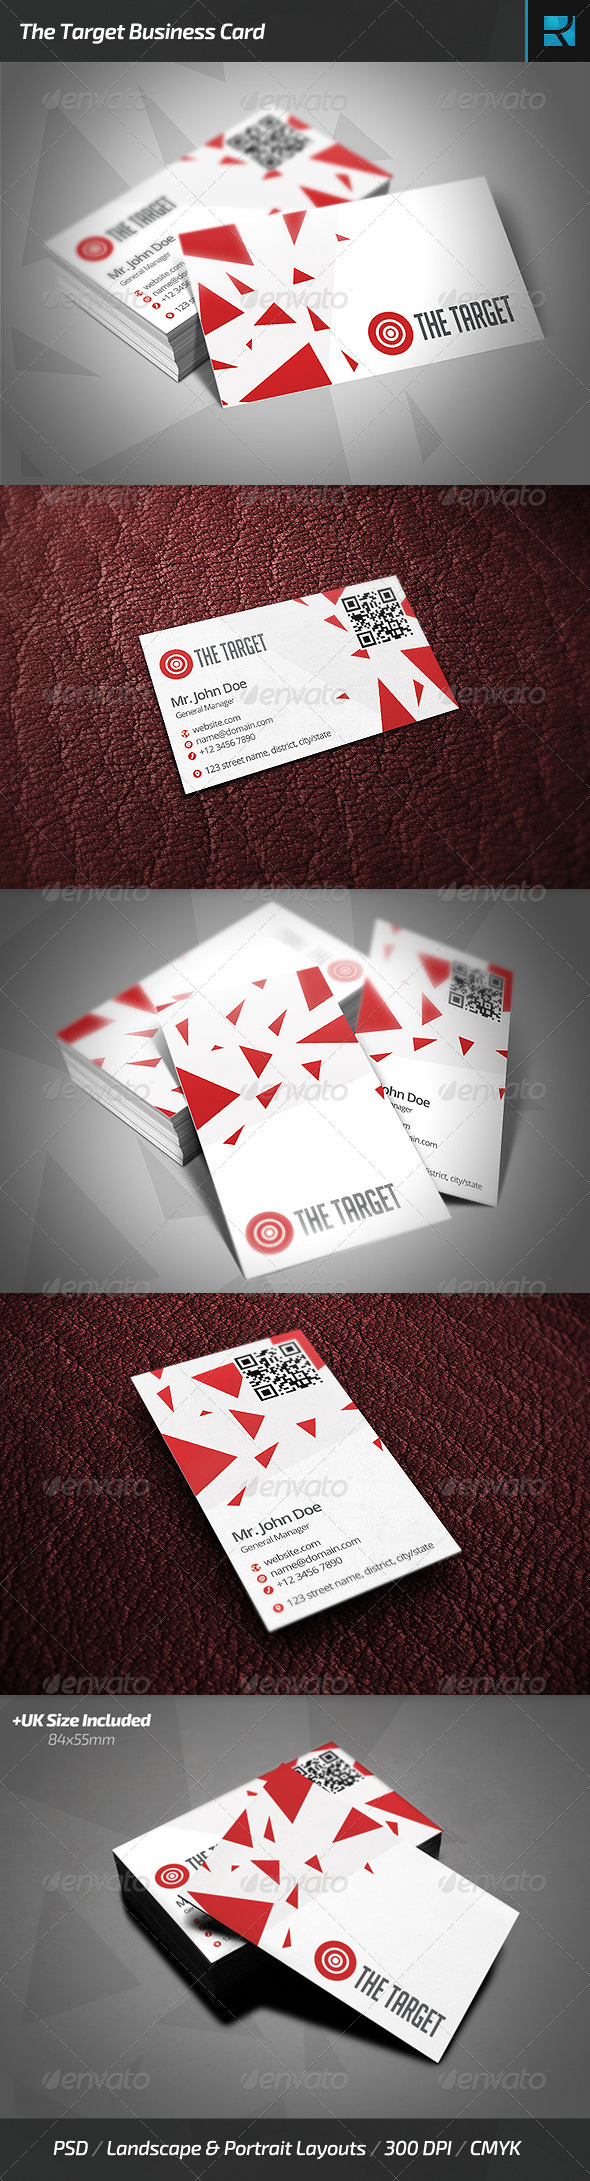 GraphicRiver The Target Business Card 6869329